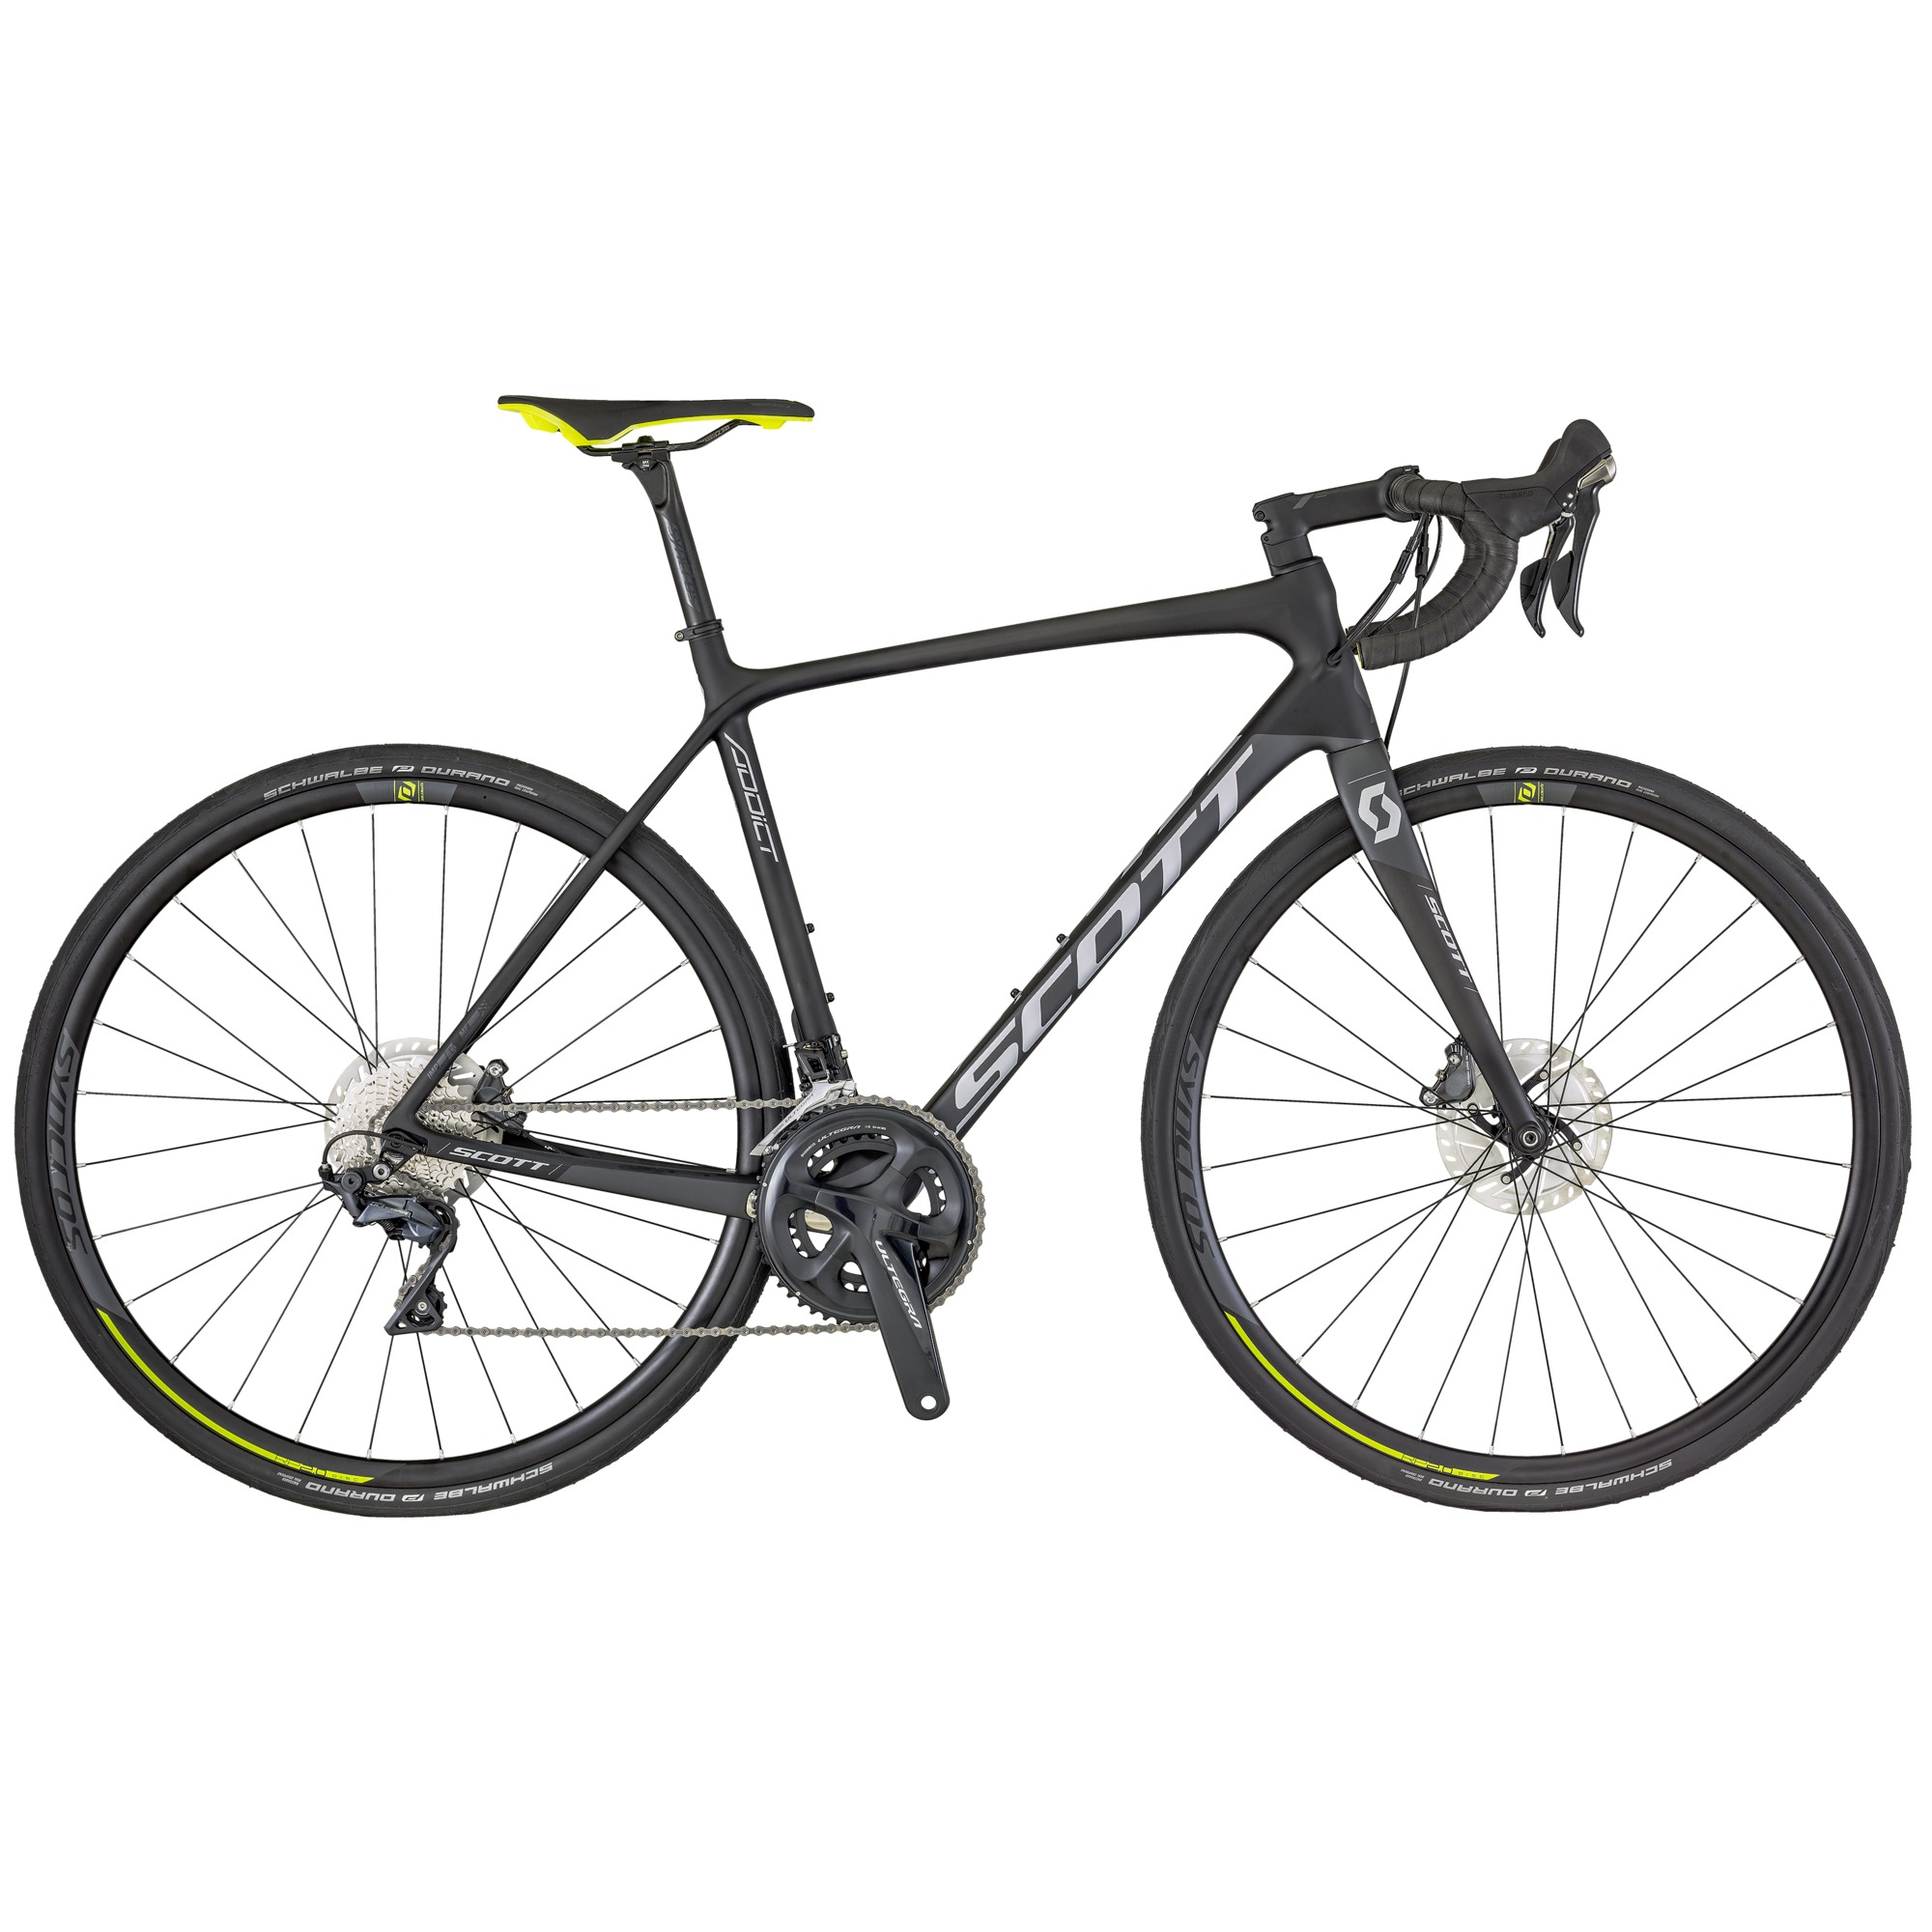 SCOTT Addict 10 Disc Bike 2XL61 - Zweirad Homann